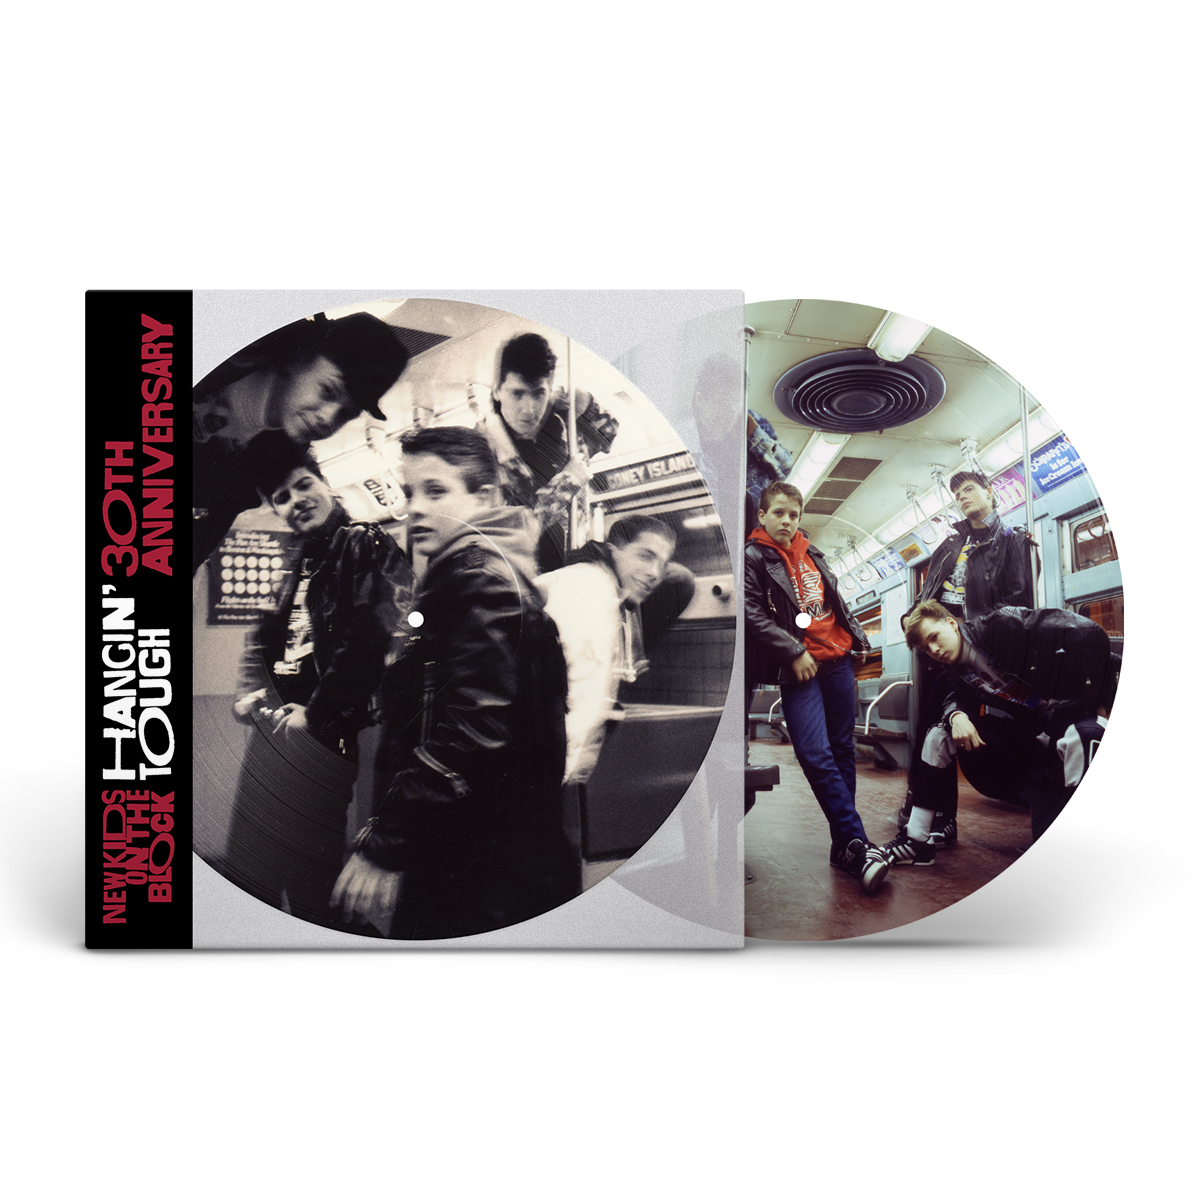 Hangin' Tough 30th Anniversary Picture Disc Vinyl LP